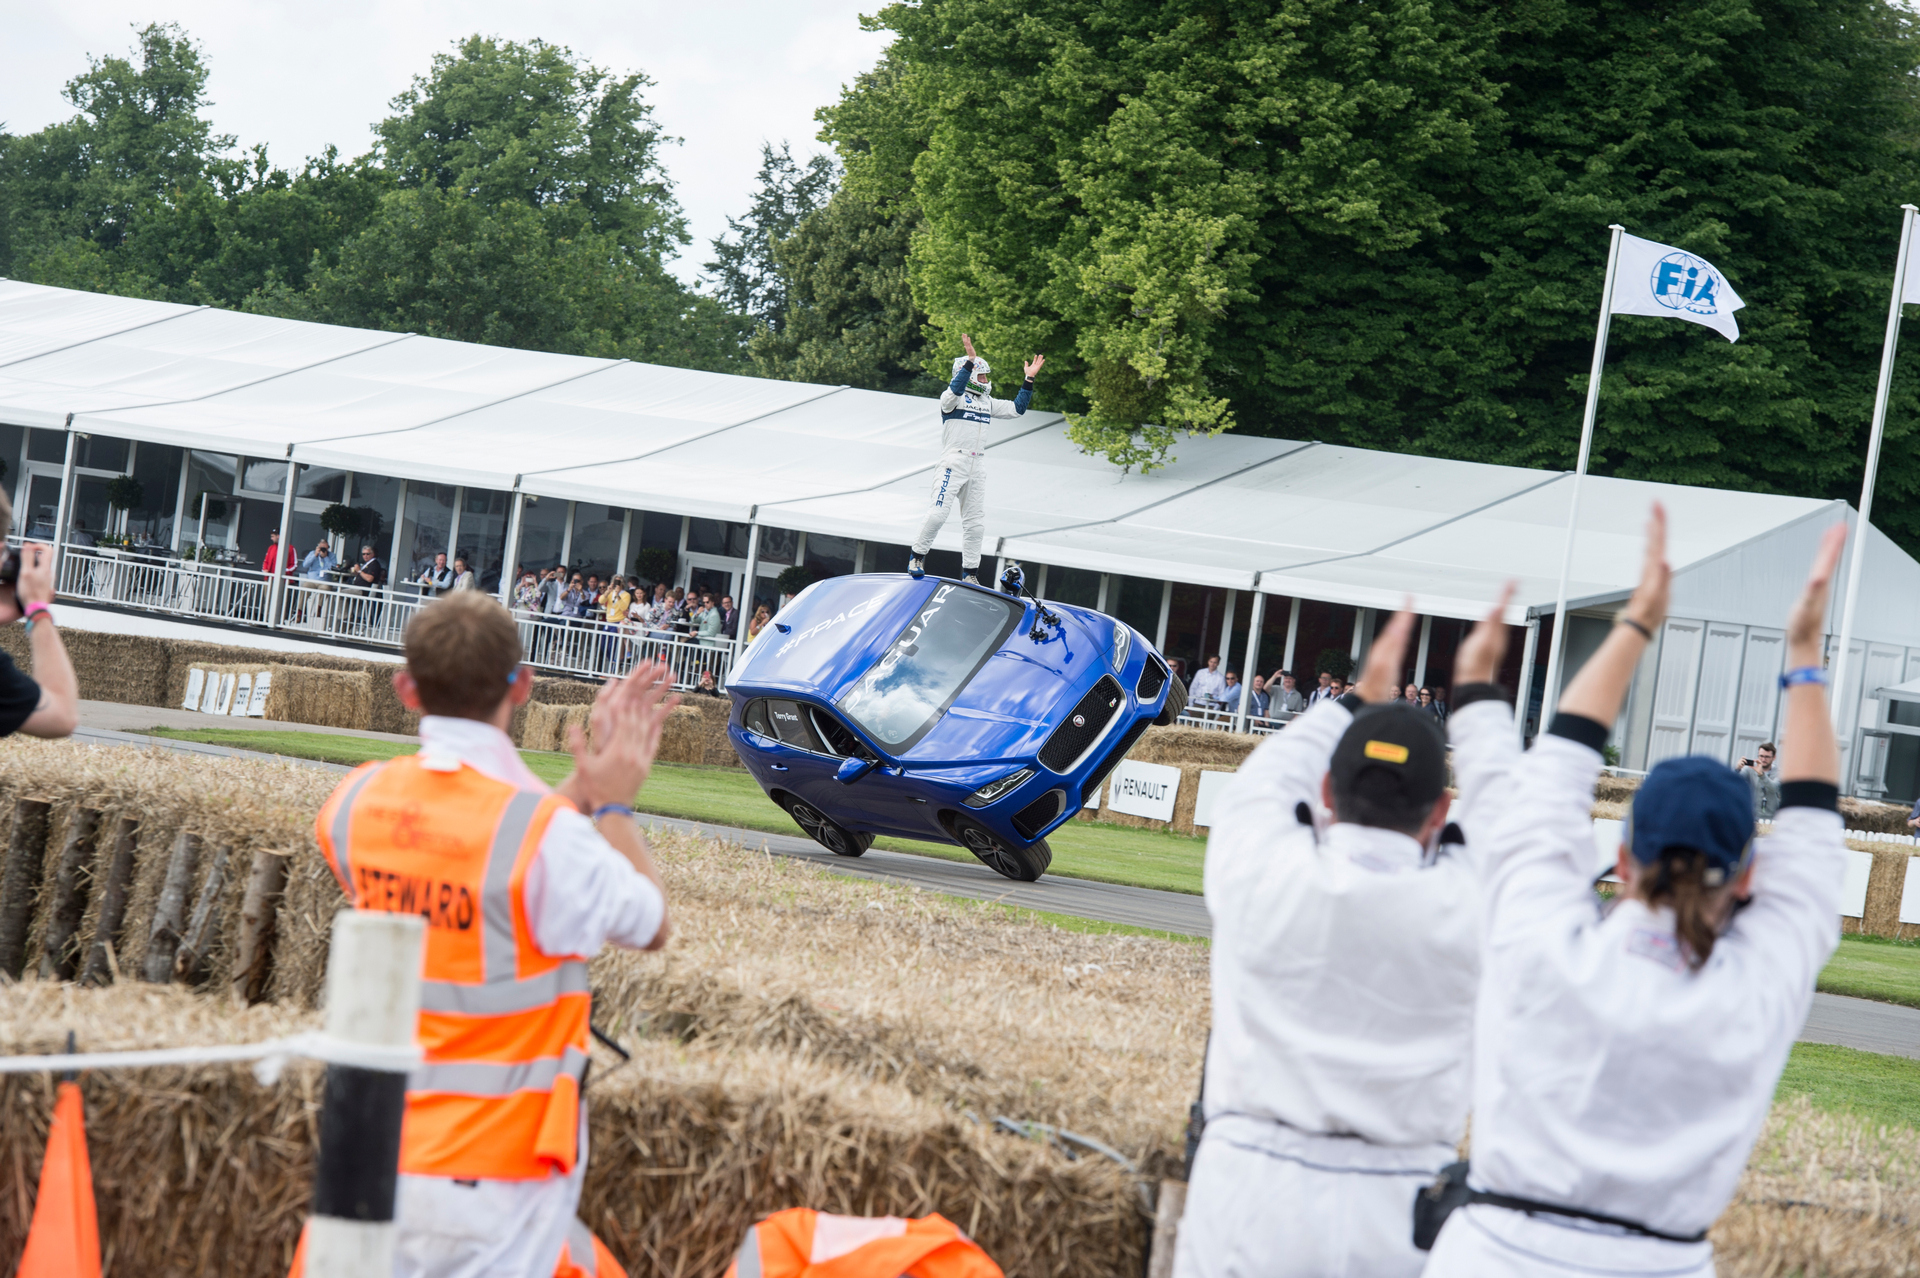 Jaguar F-Pace Thrills Goodwood with Dramatic Two-Wheeled Ride © Tata Group